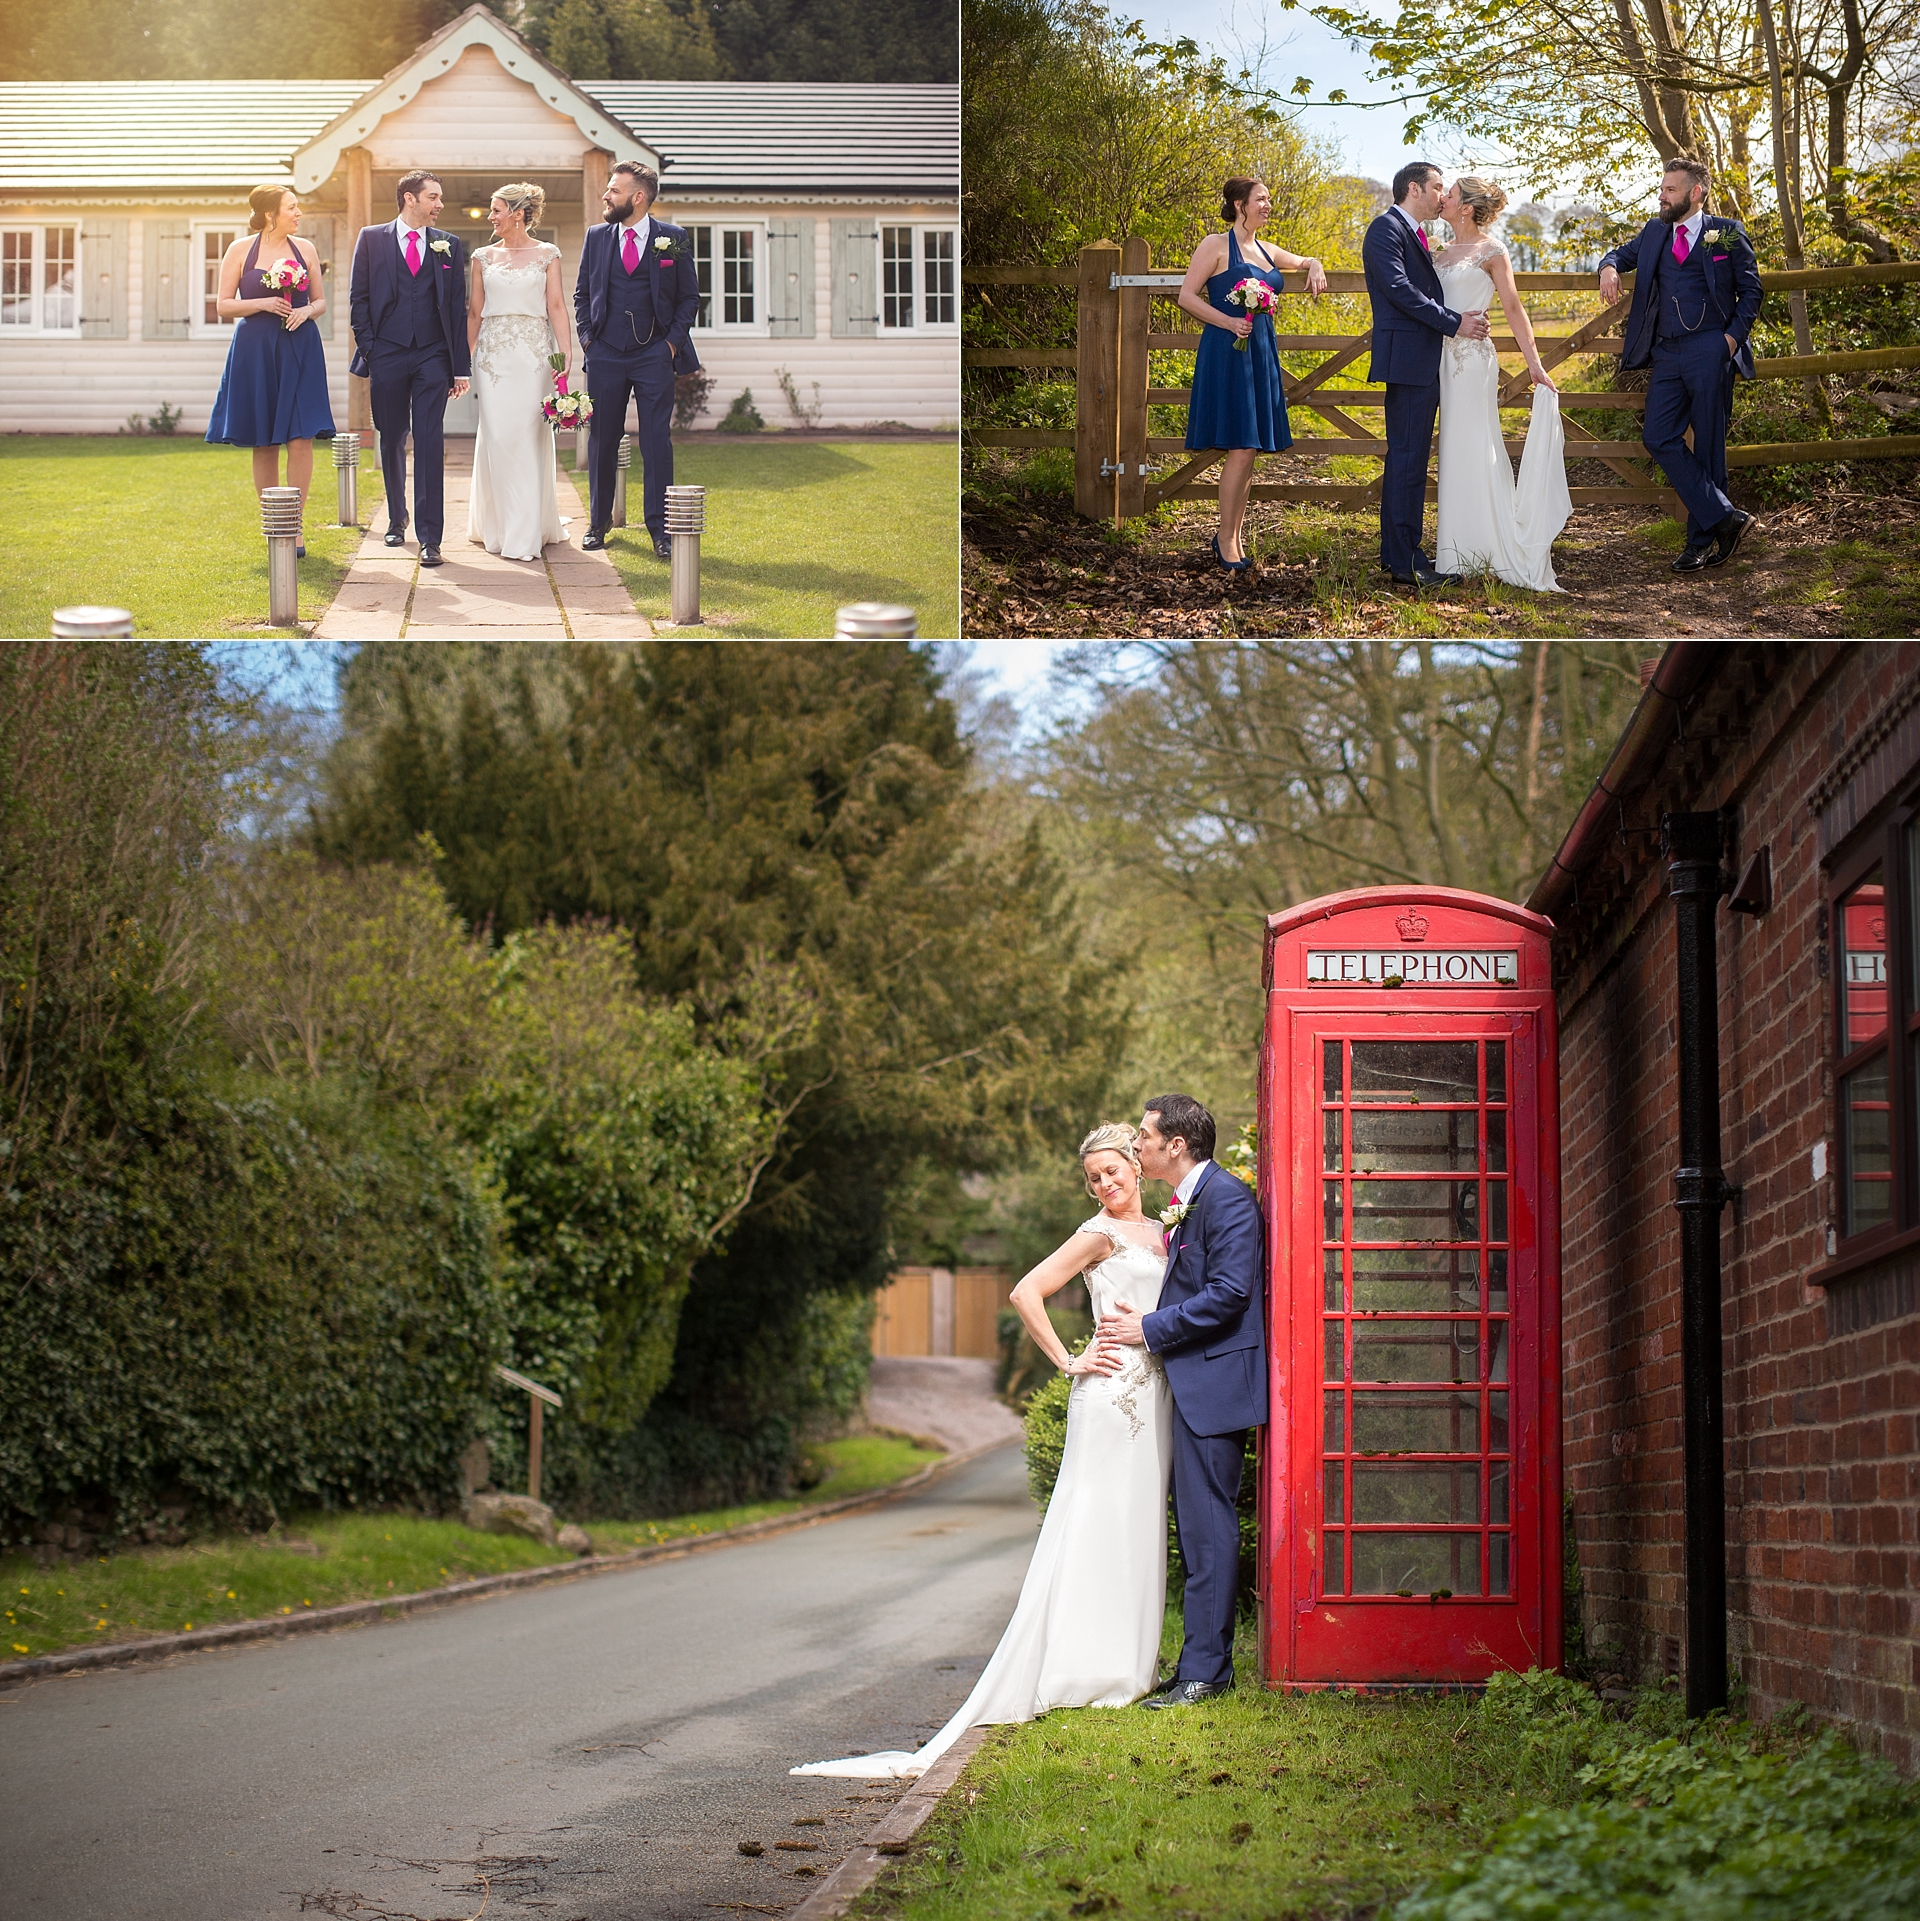 wedding photographer slaters stoke on trent 5.jpg